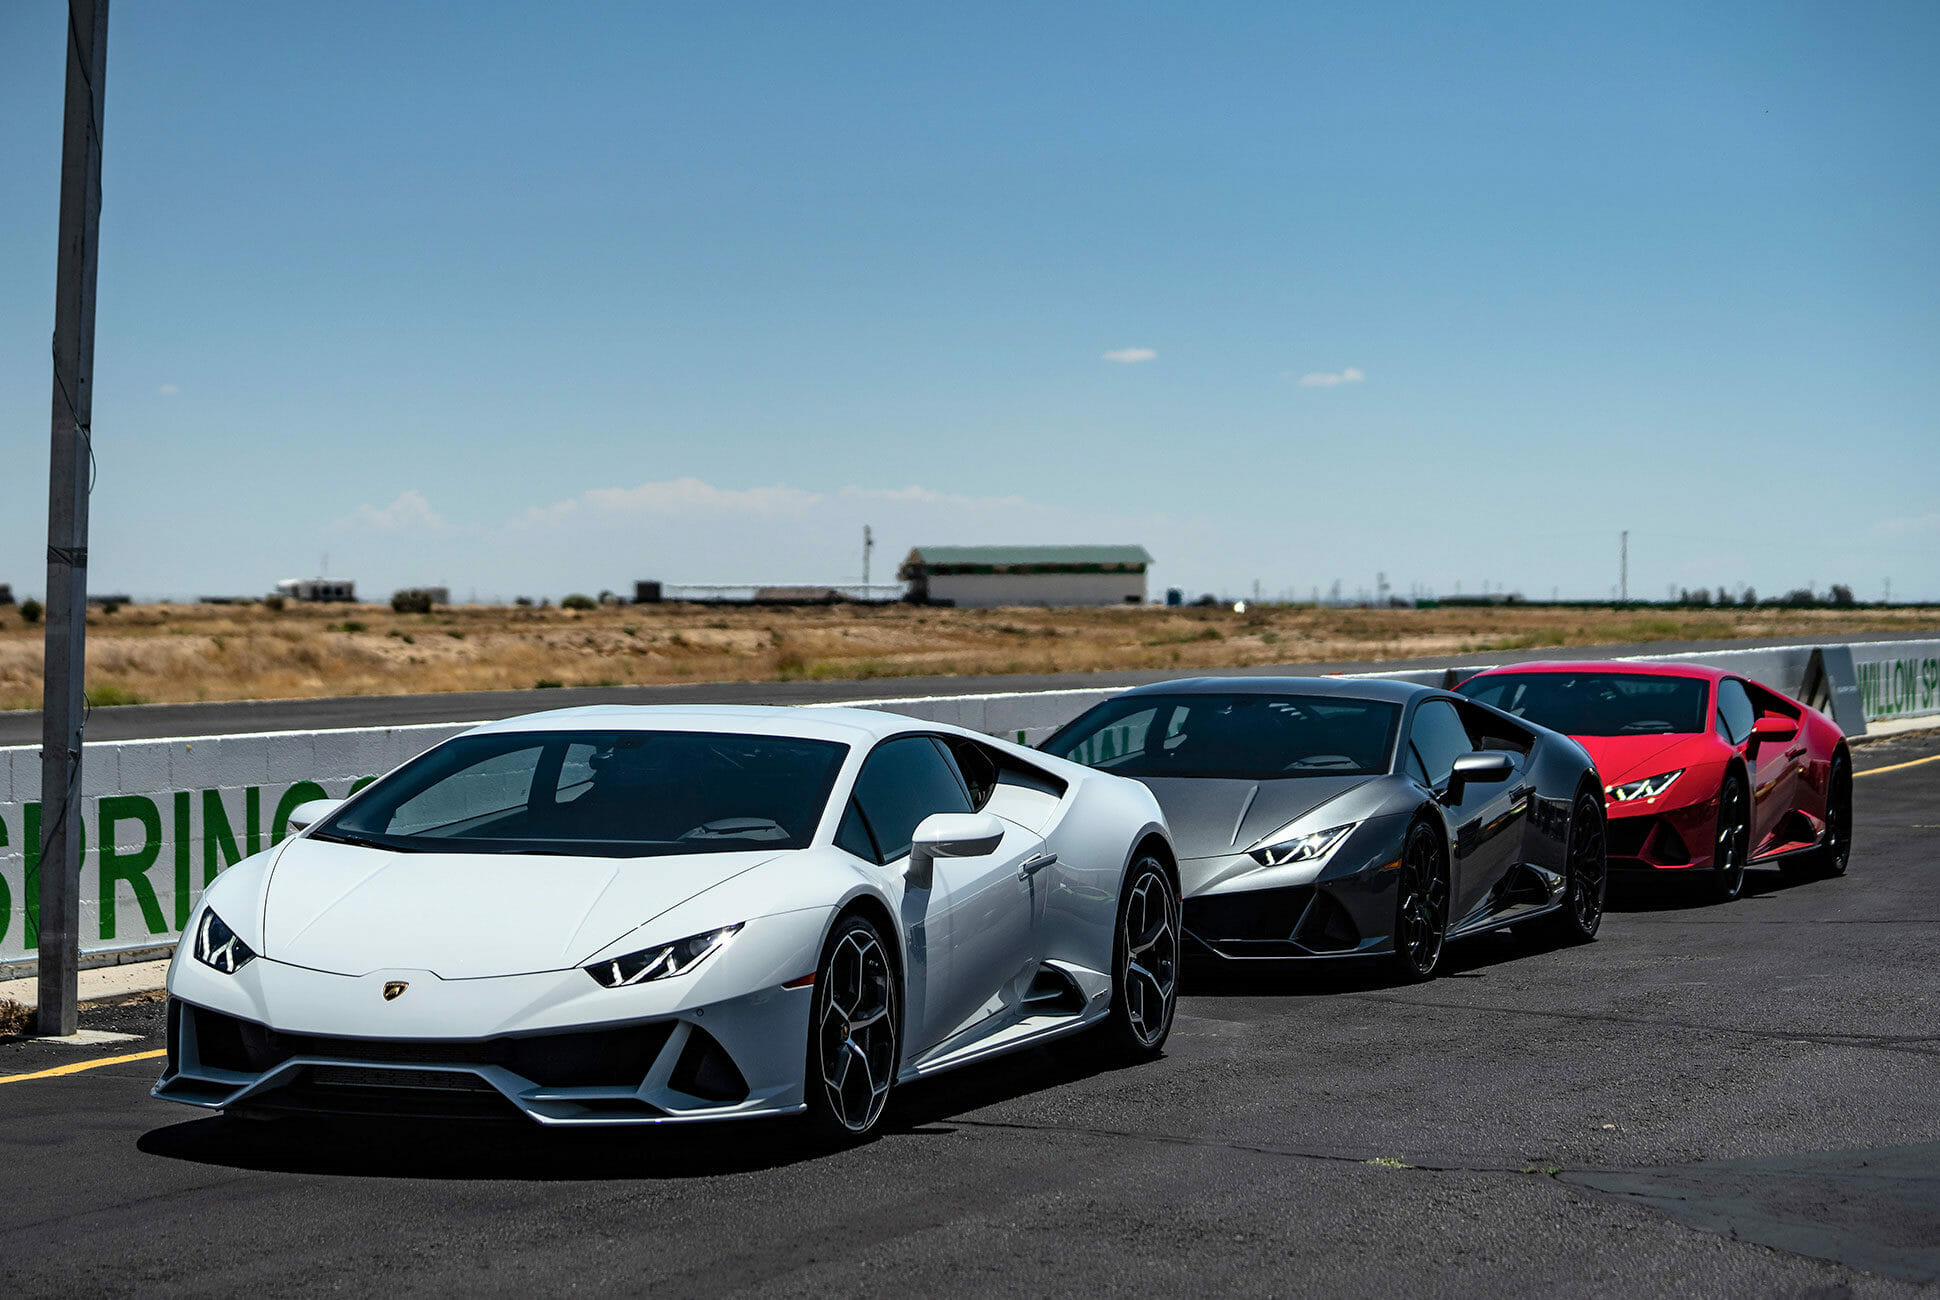 2020-Lamborghini-Huracan-EVO-Review-gear-patrol-slide-1